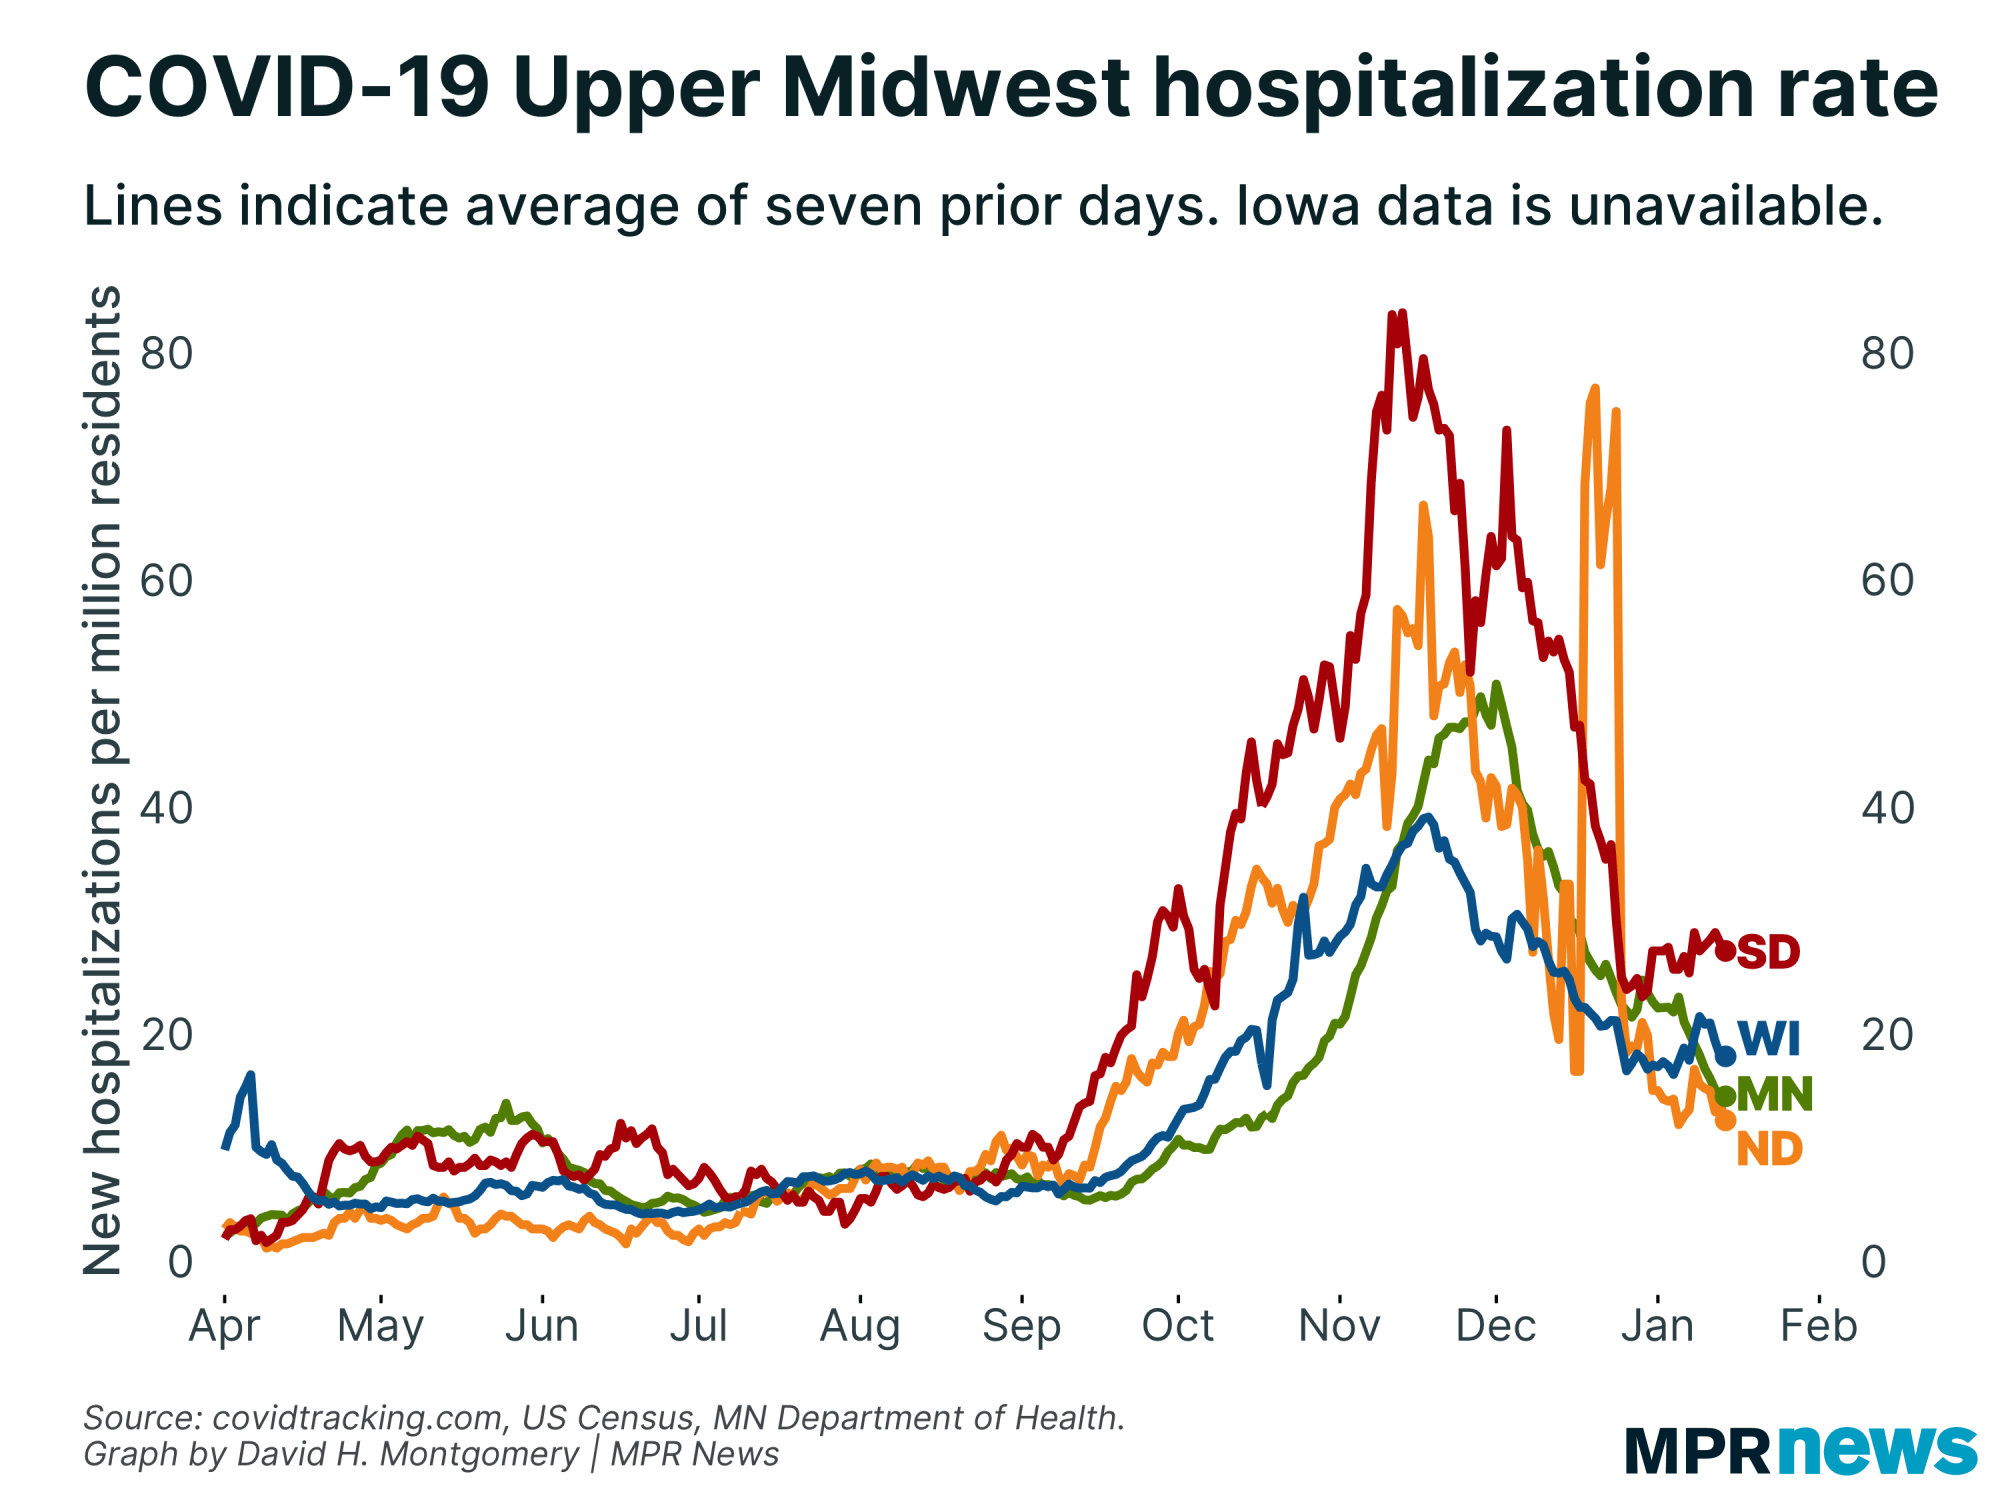 New COVID-19 hospitalizations per capita in the Upper Midwest